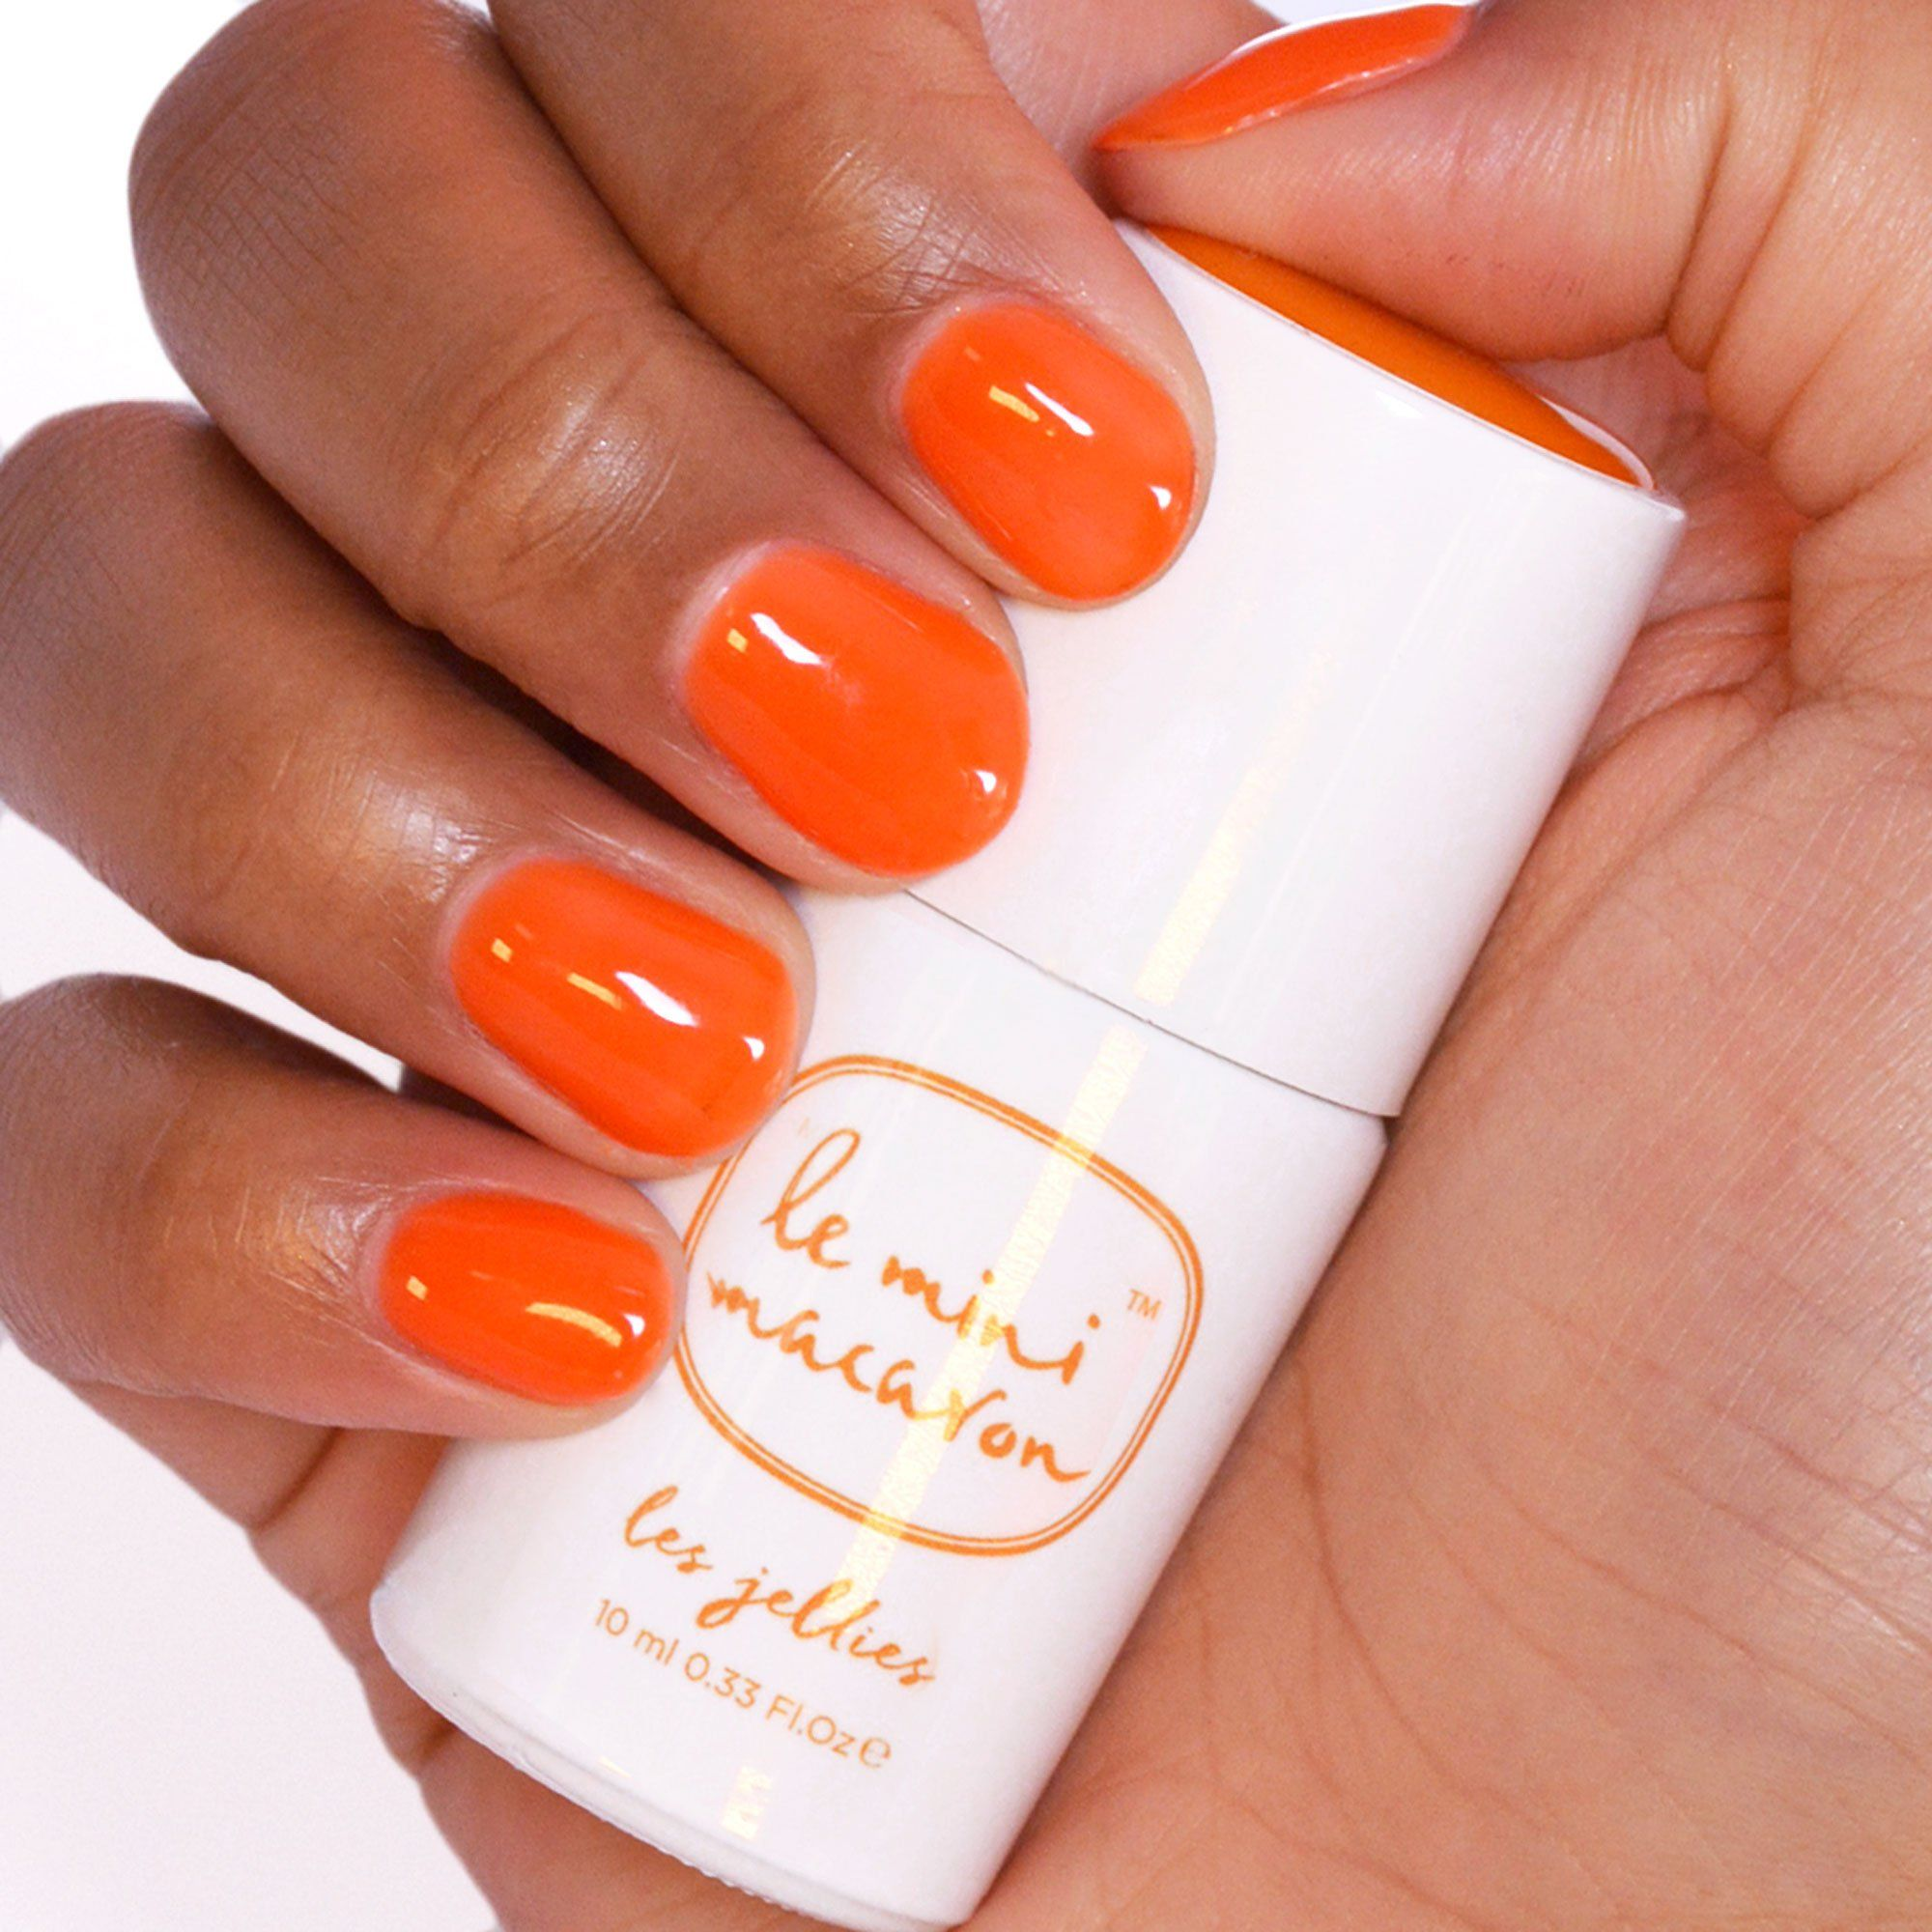 Les Jellies - Mango Jelly Gel Polish Le Mini Macaron Europe